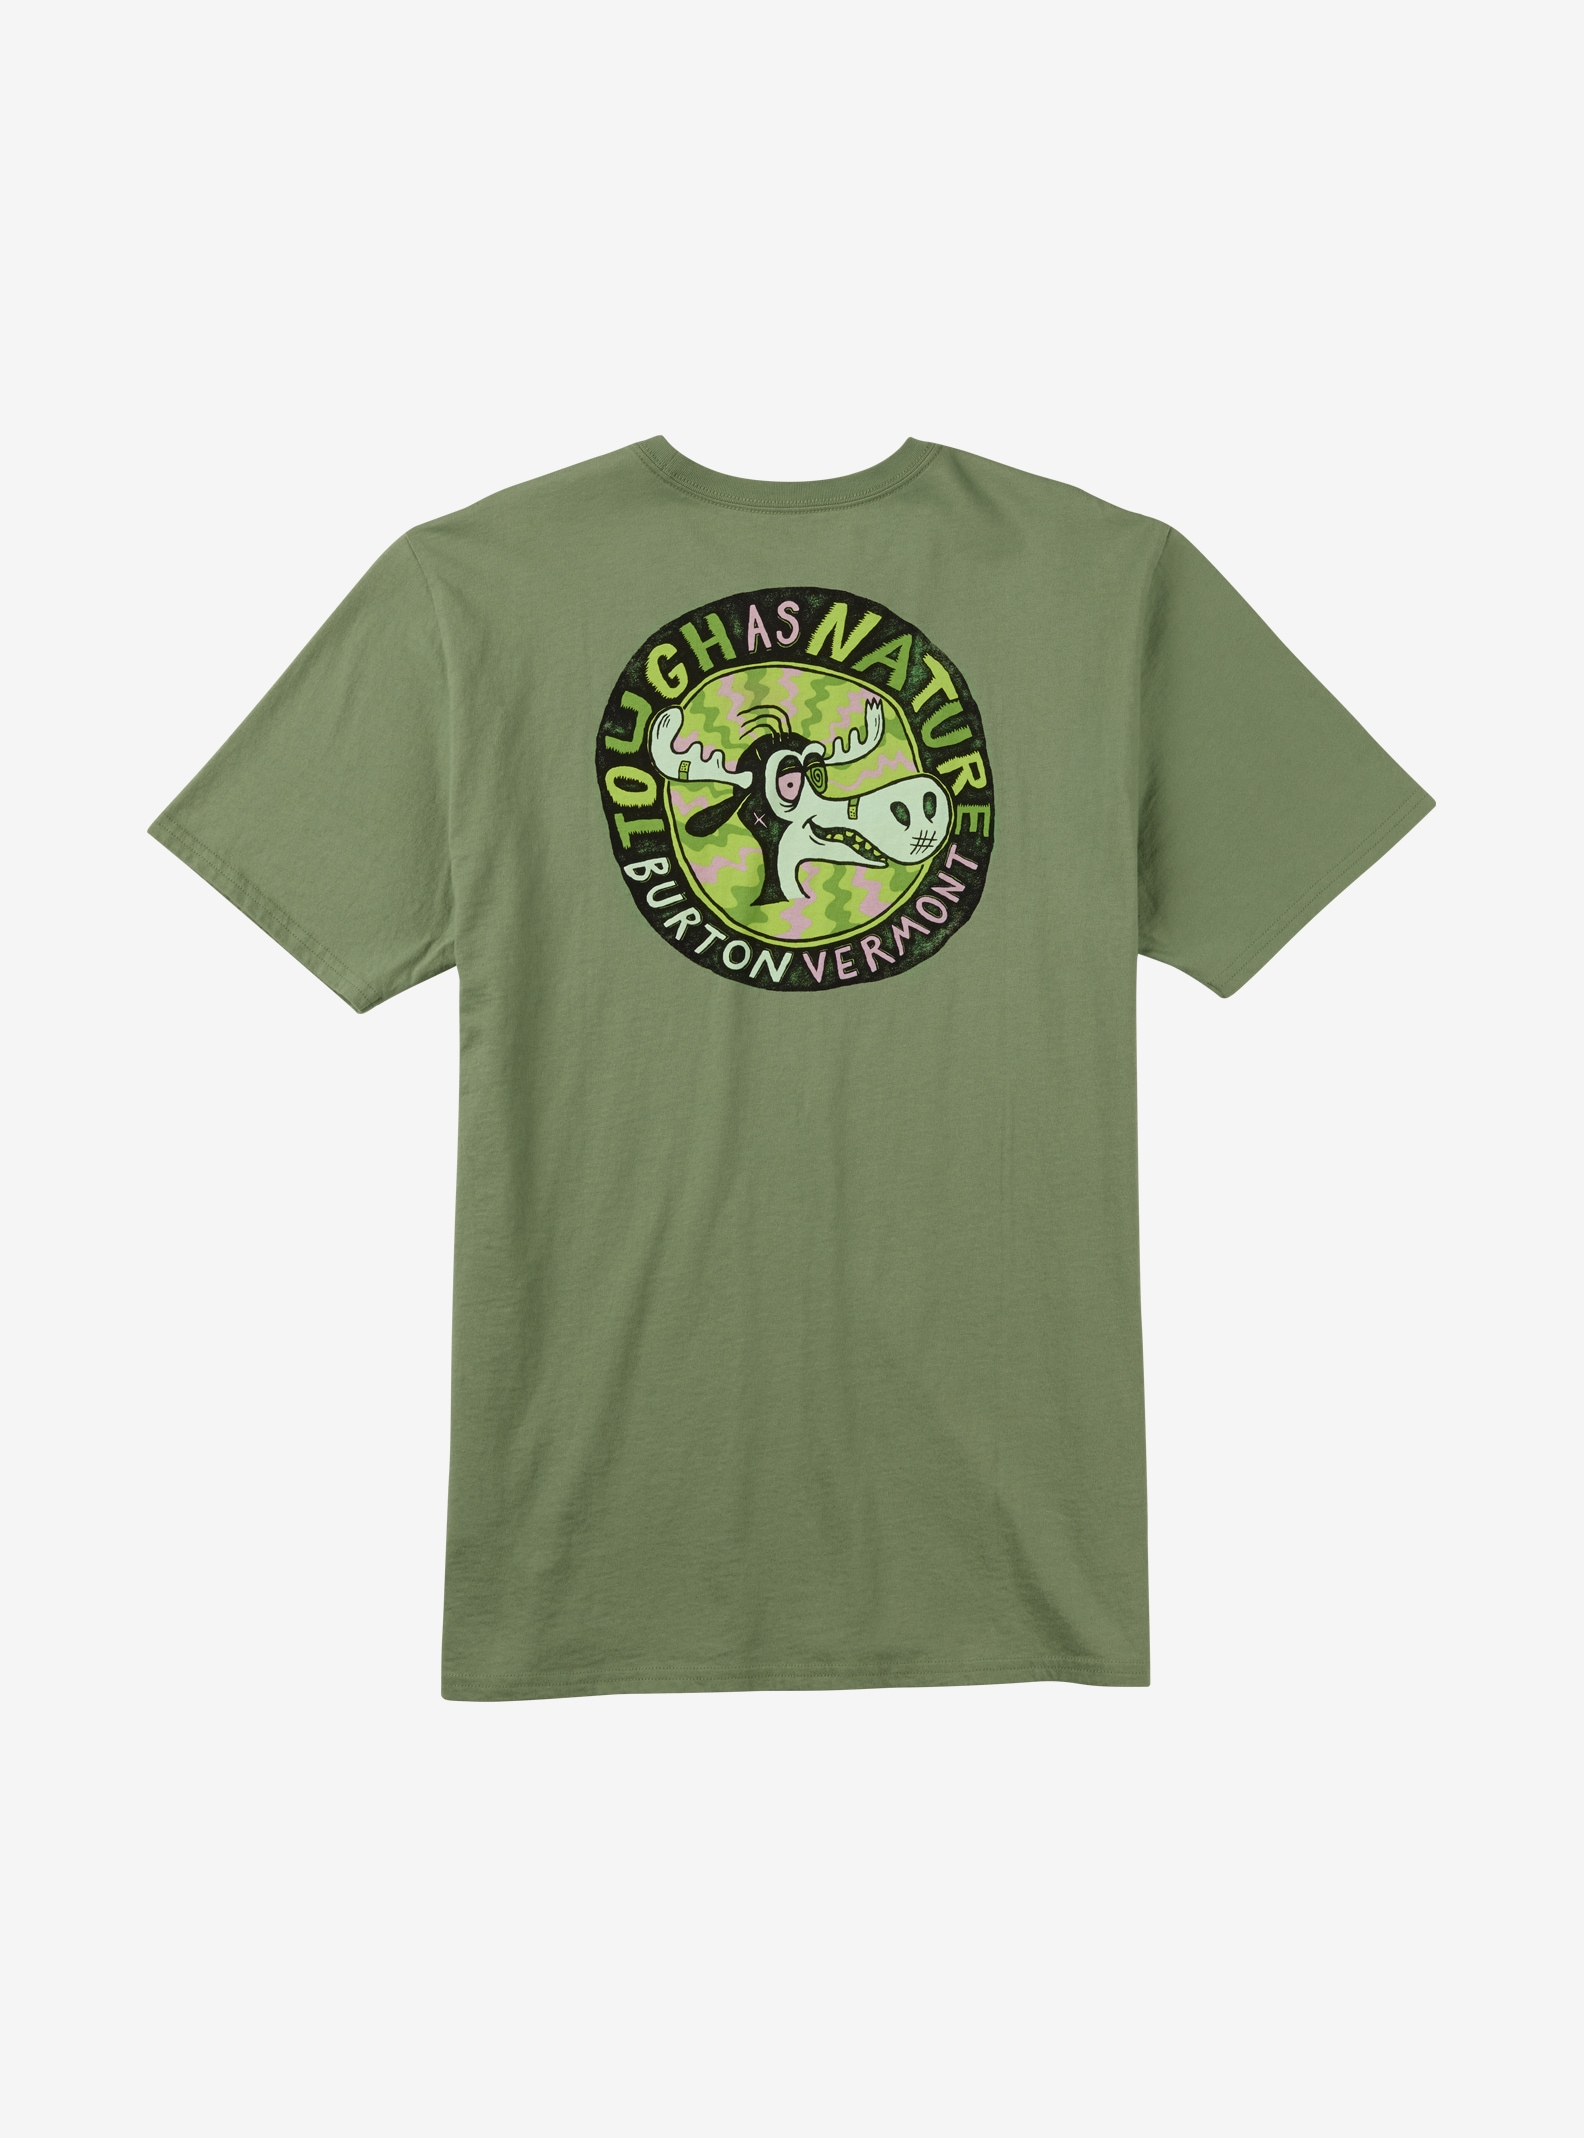 Burton Tough as Nature T-Shirt angezeigt in Oil Green